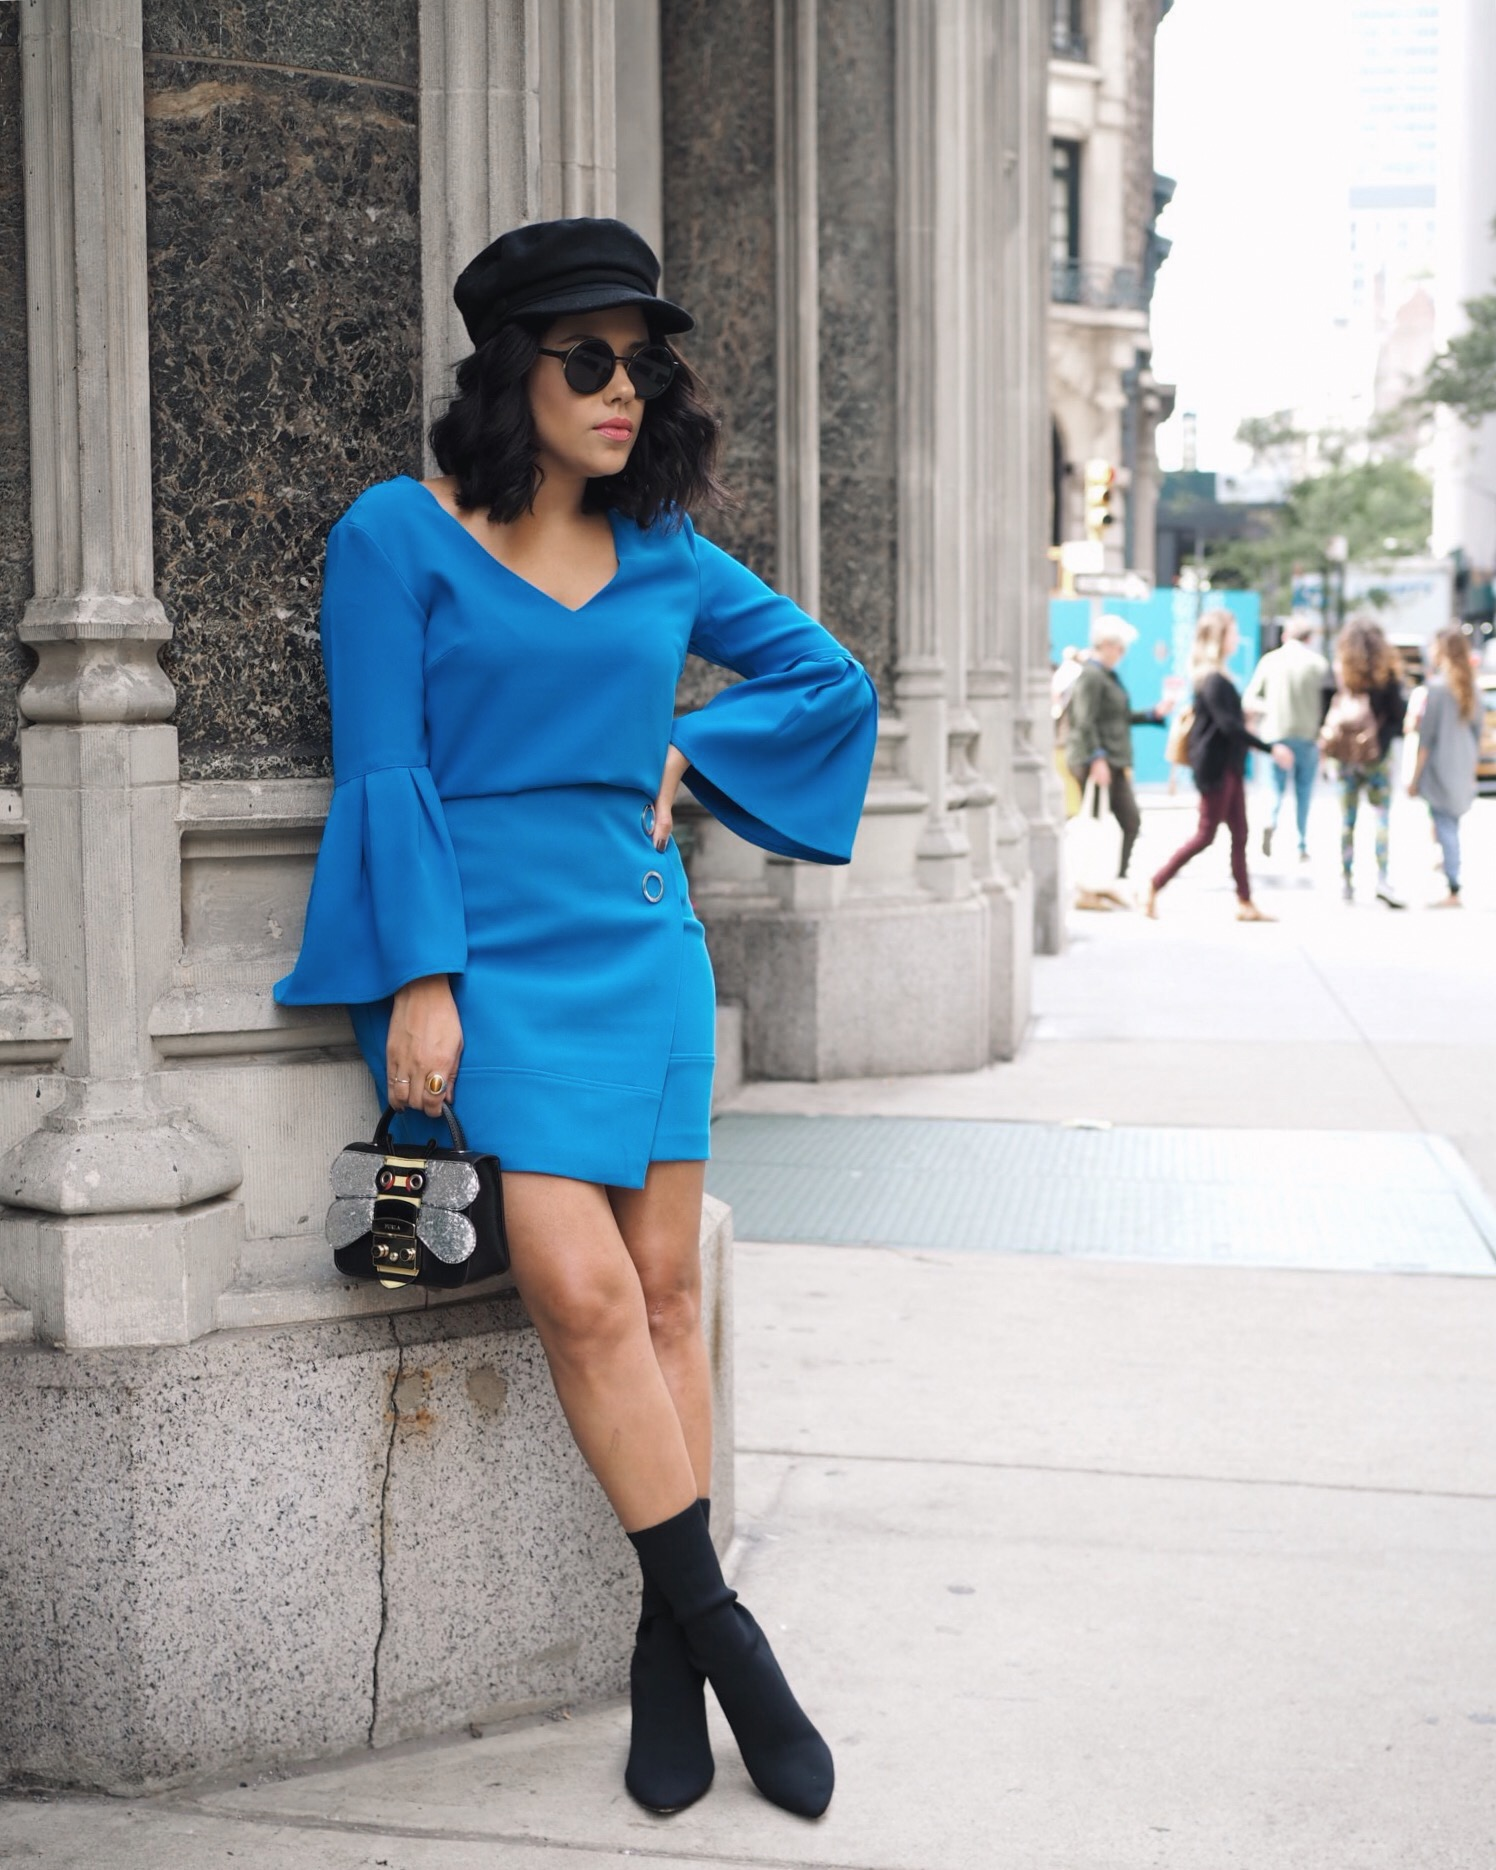 naty michele wearing blue and black outfit at nyfw